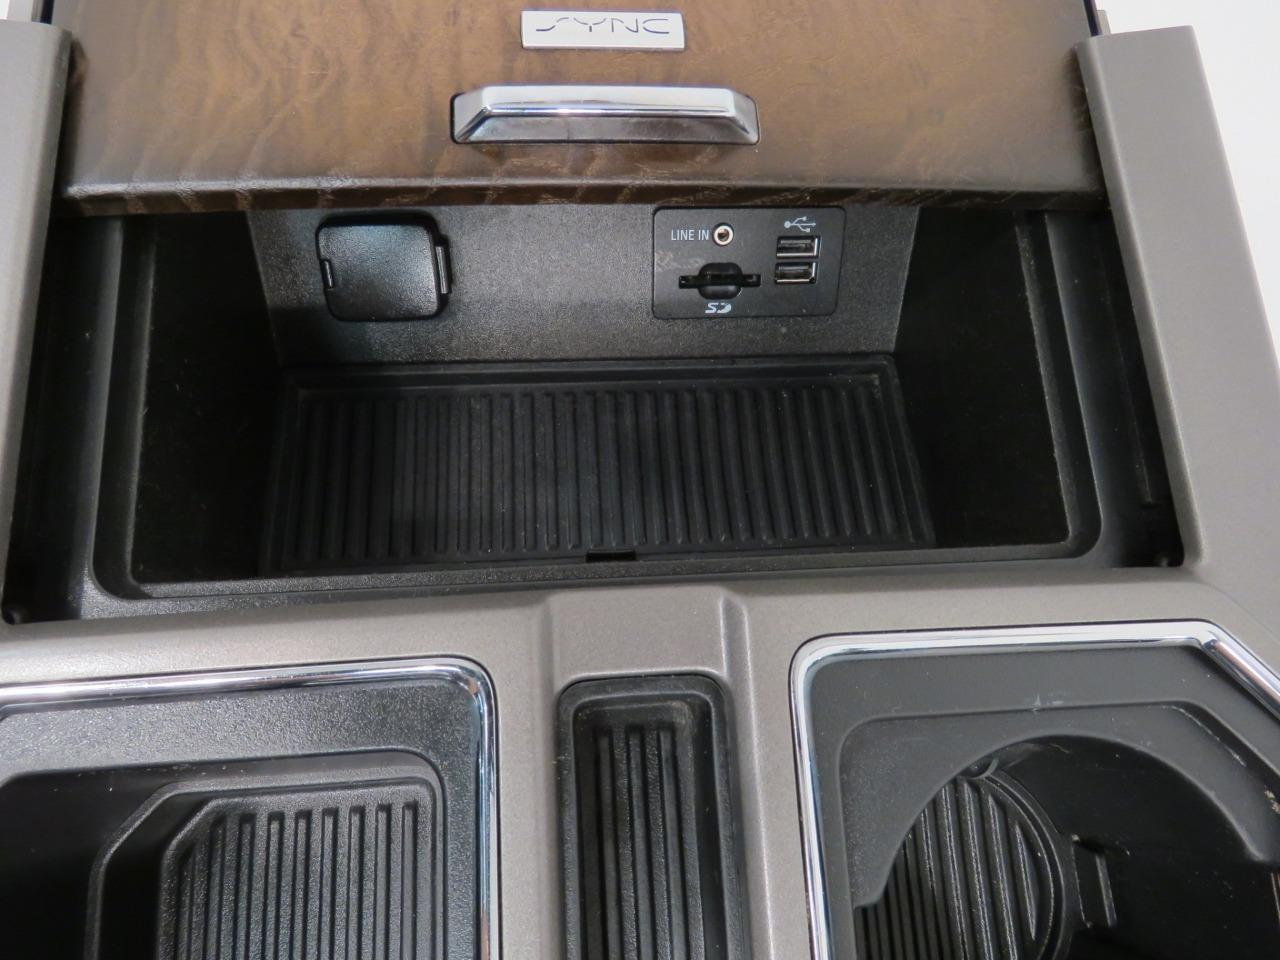 2016 Ford Expedition For Sale >> Replacement Ford Center Console Install Kit 2015 2016 2017 2018 Black F150 F250 F350 Super Duty ...